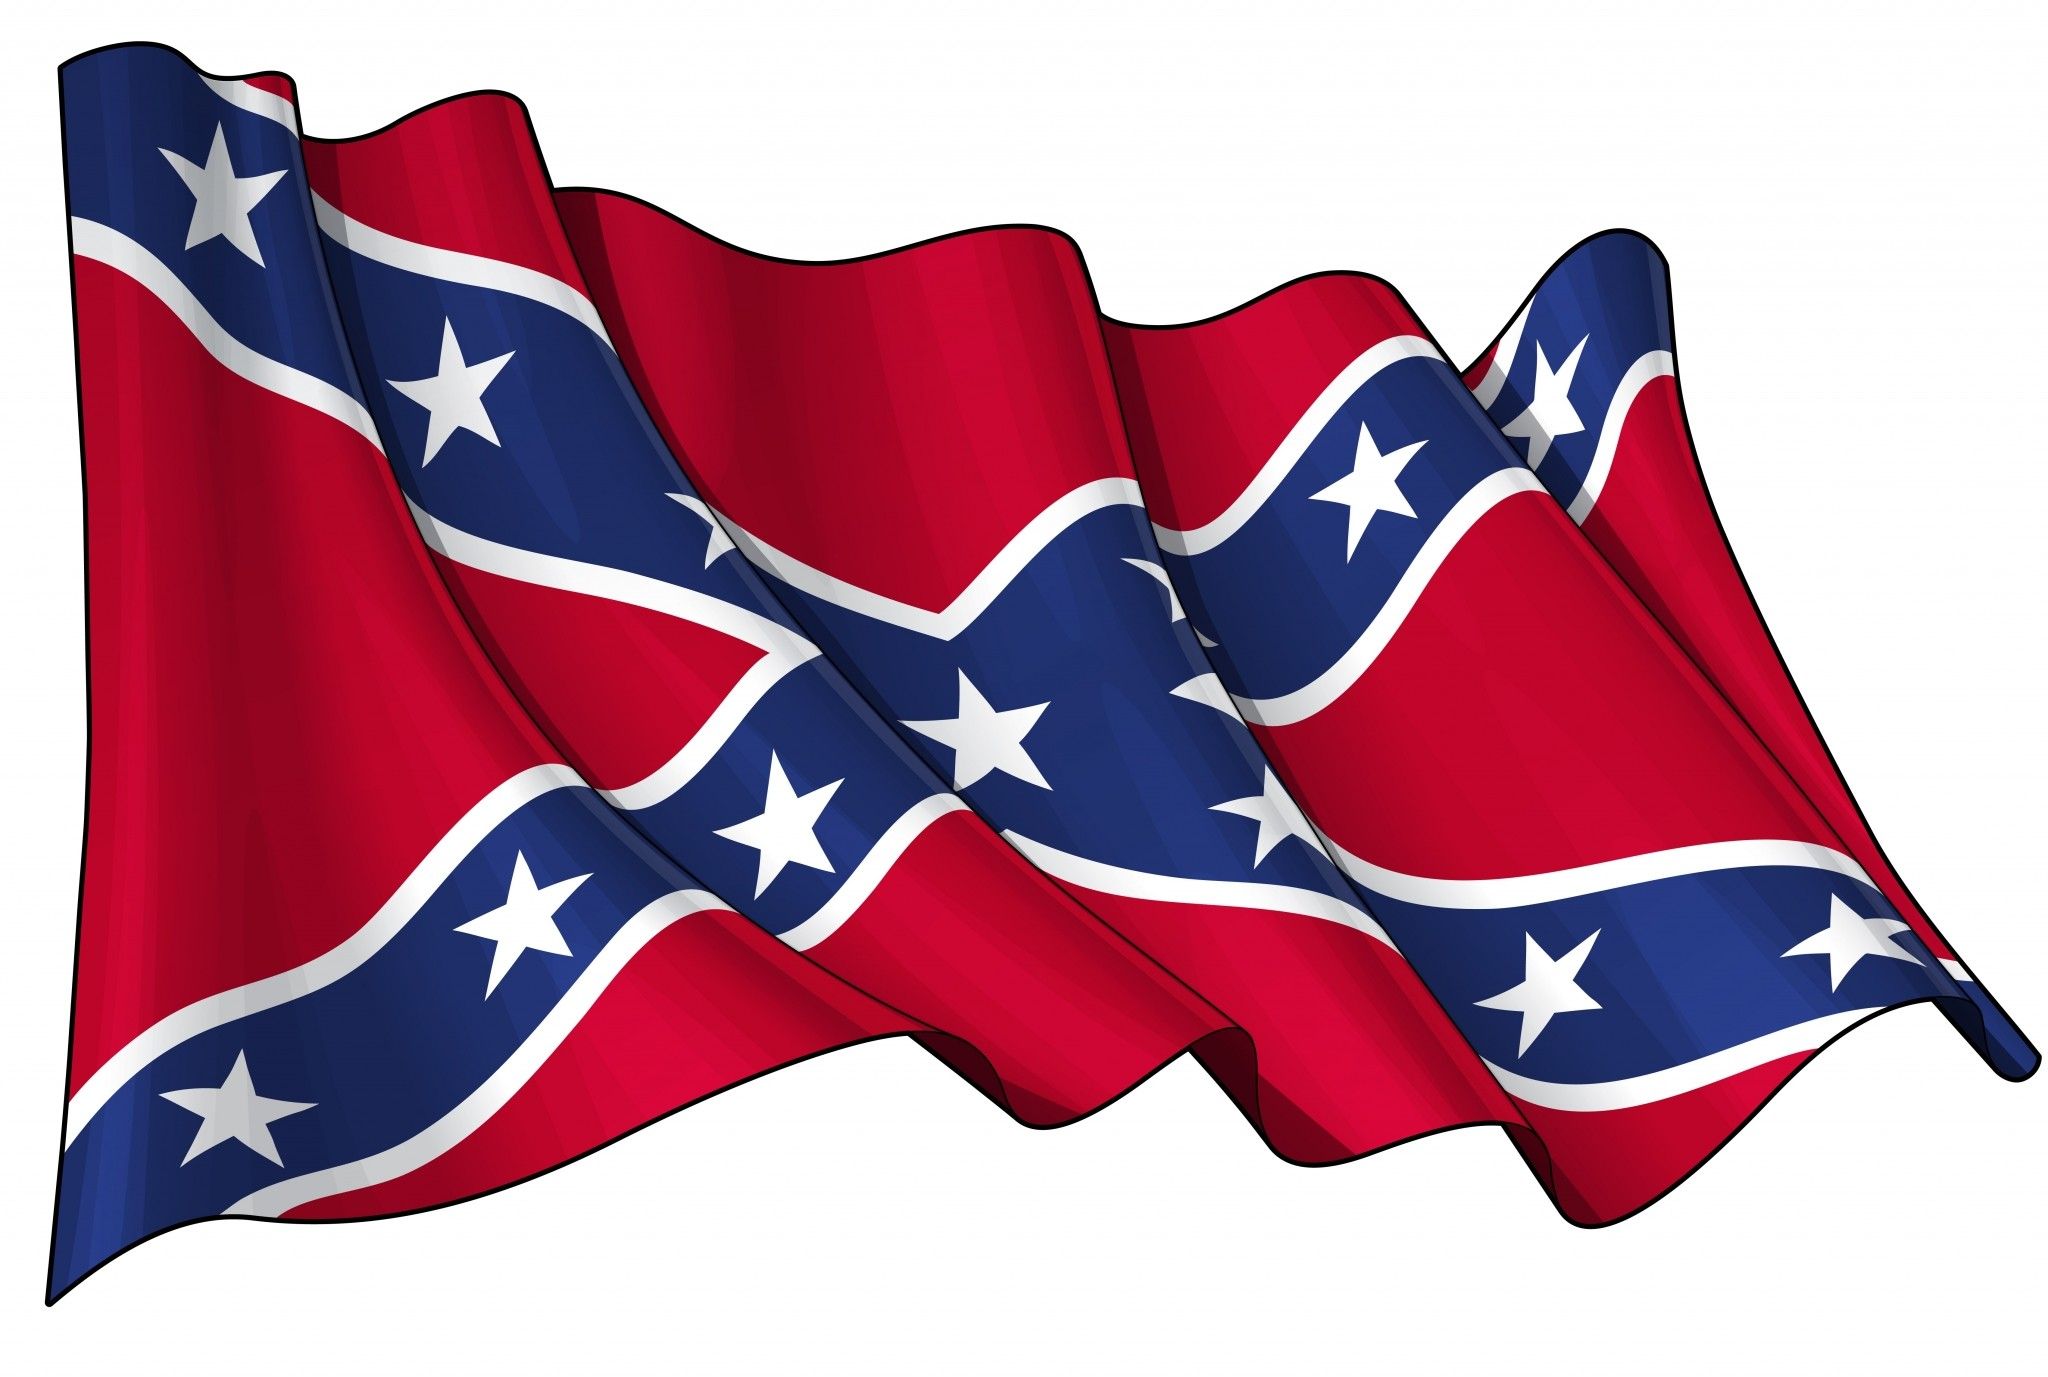 2048x1377 Confederate Flag Wallpapers Wallpaper Proud Hillbilly